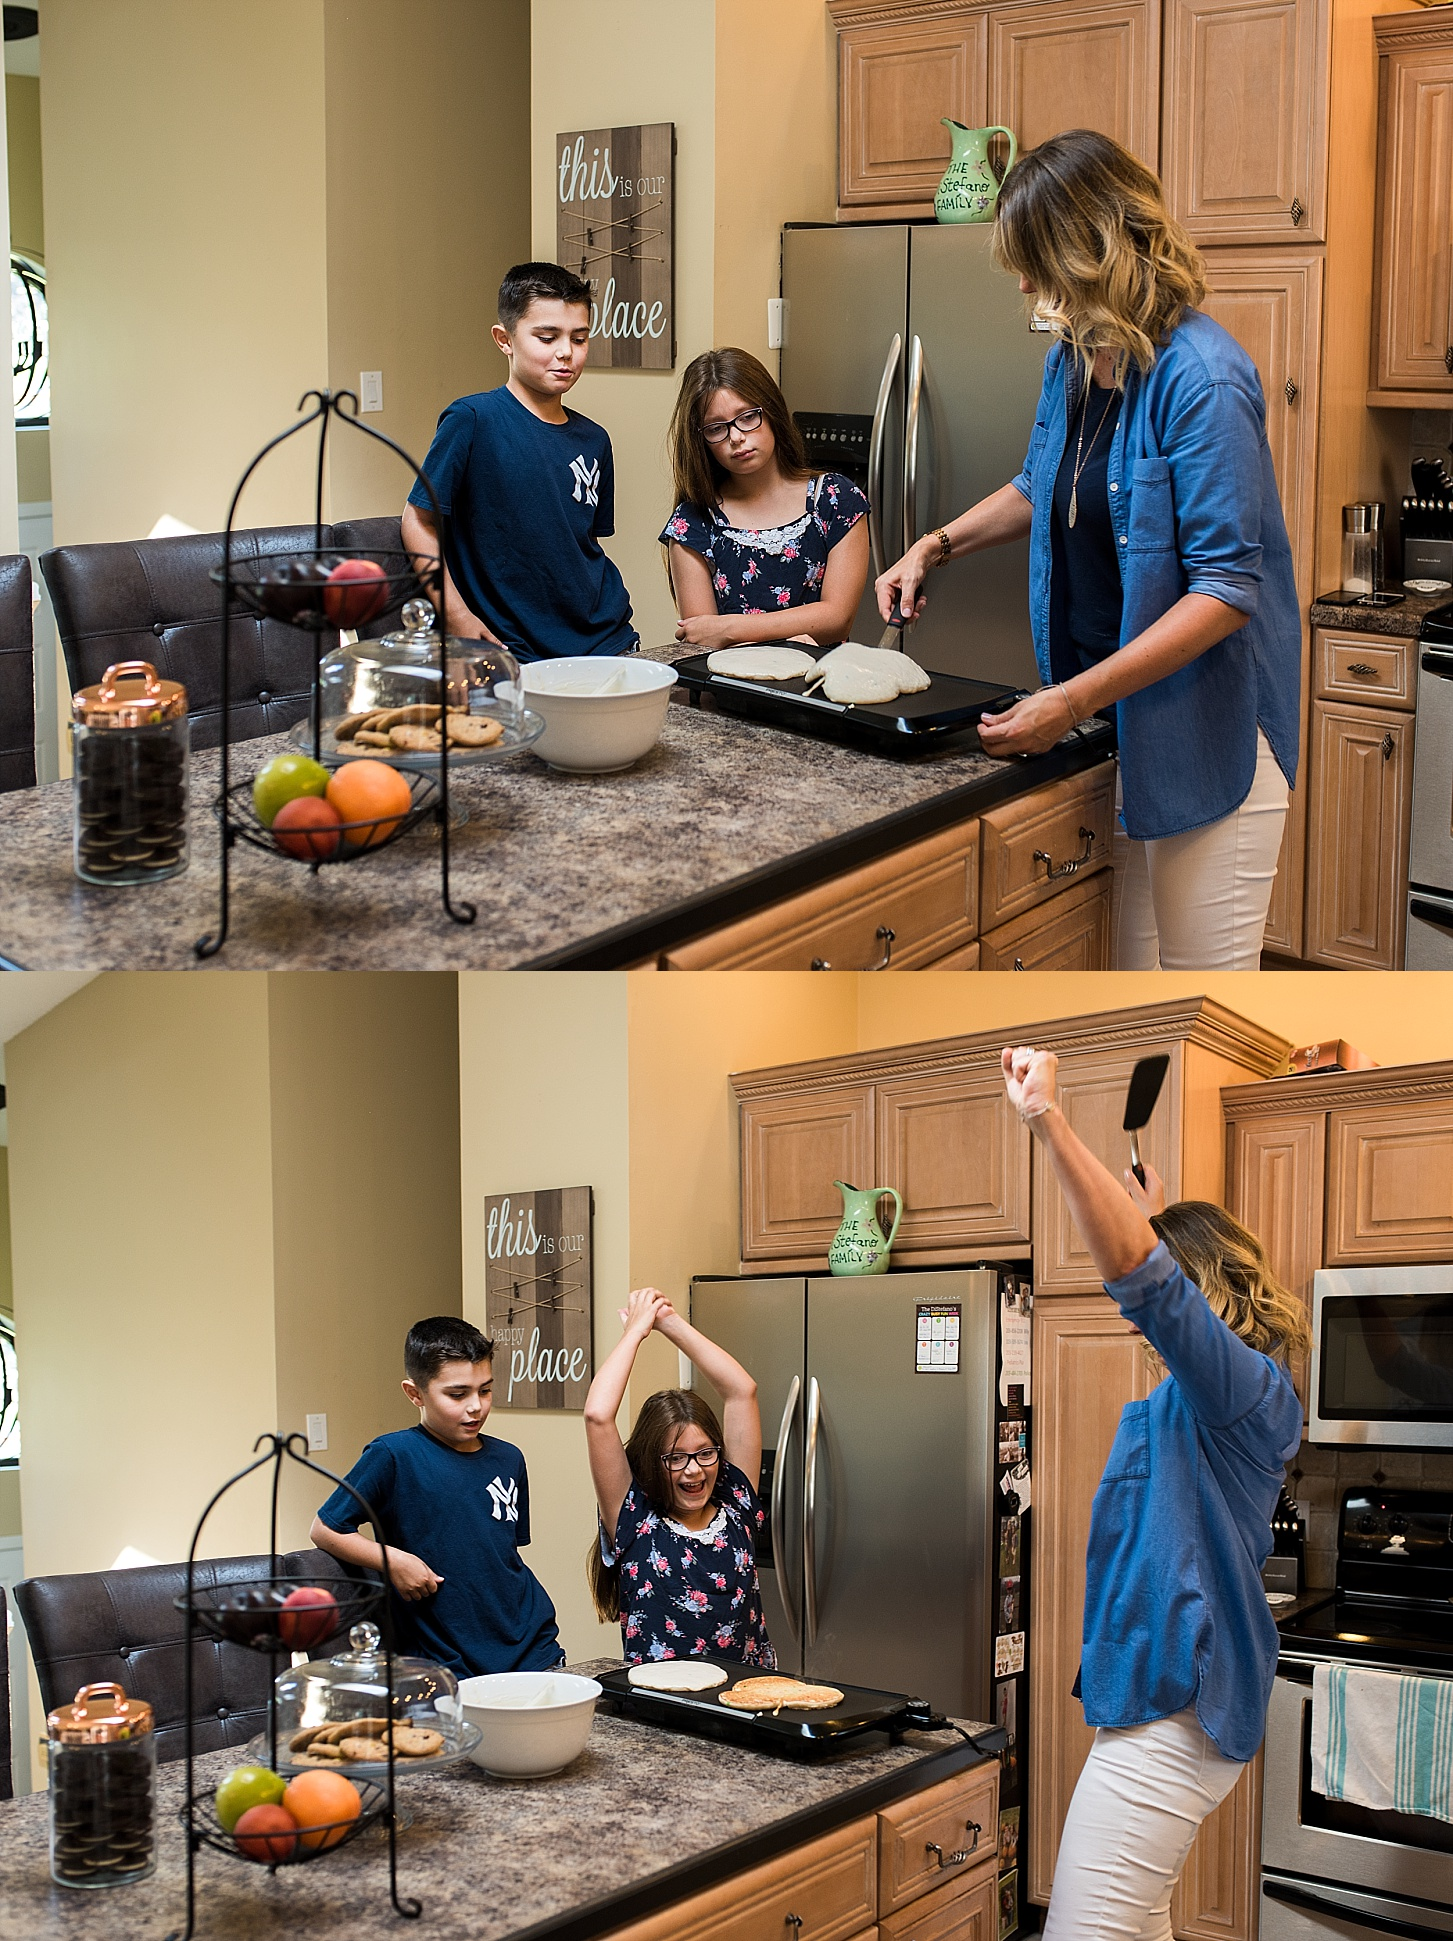 photography session in your home connecticut